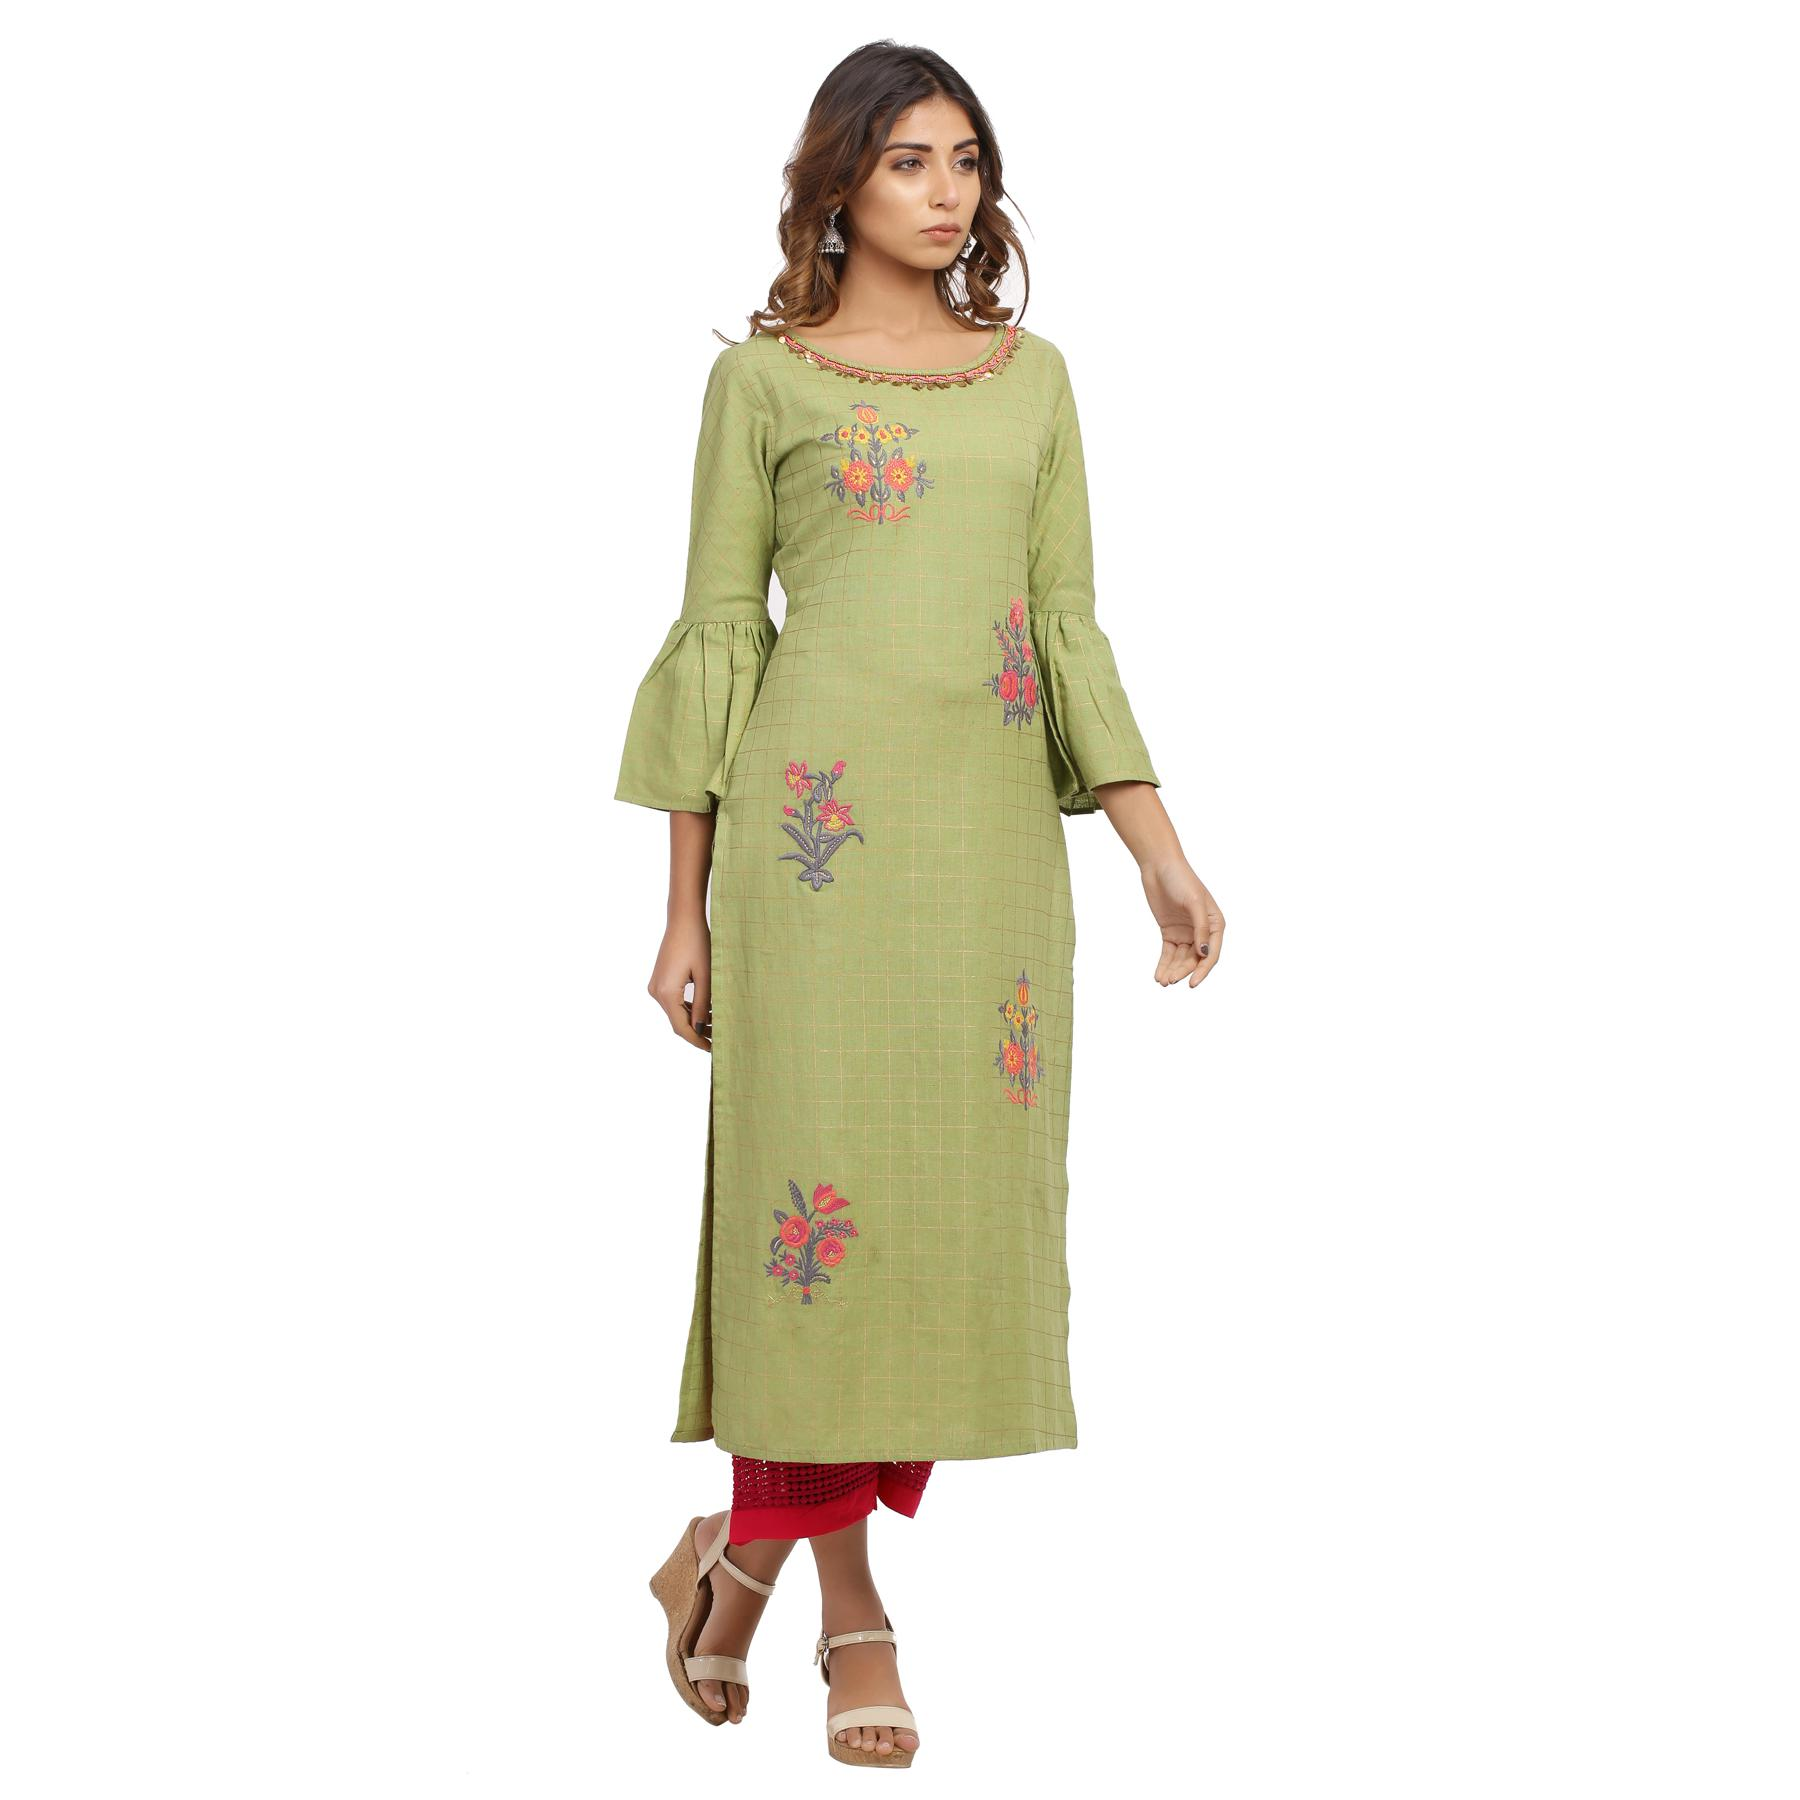 Vastrakaar - Green Colored Casual Floral Embroidered Cotton Kurti